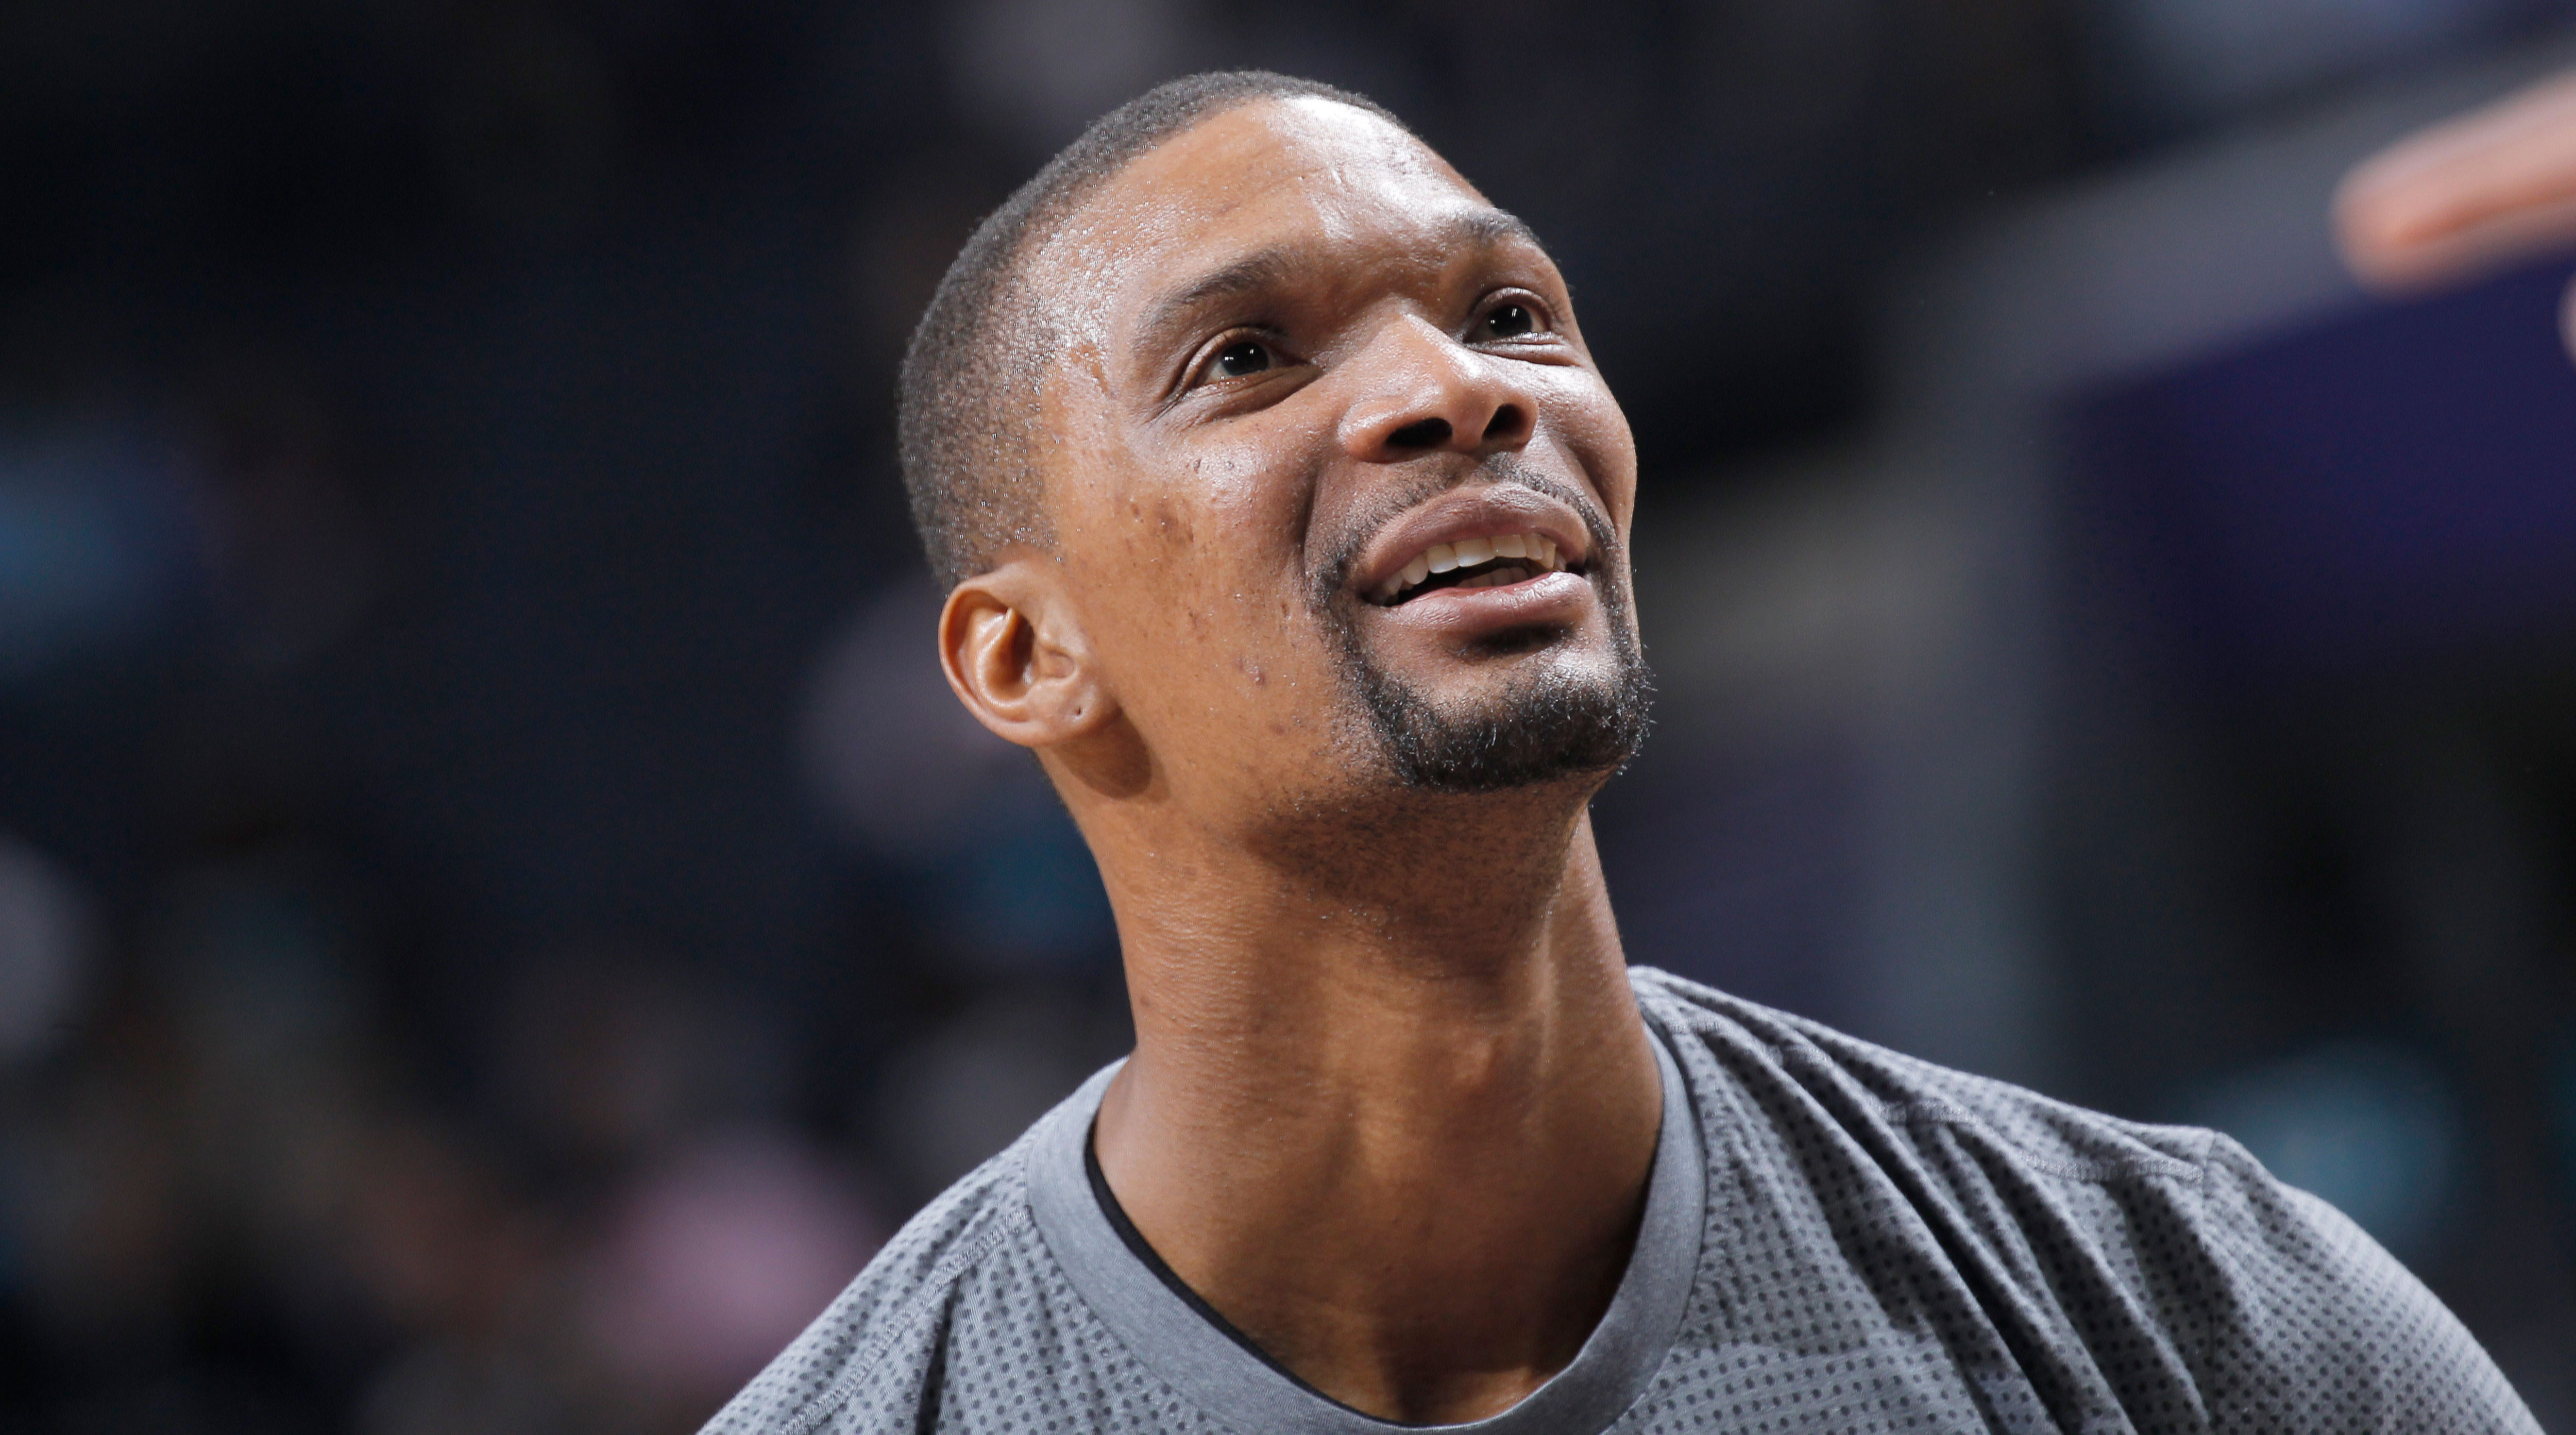 Chris Bosh could make eback with Chicago Bulls